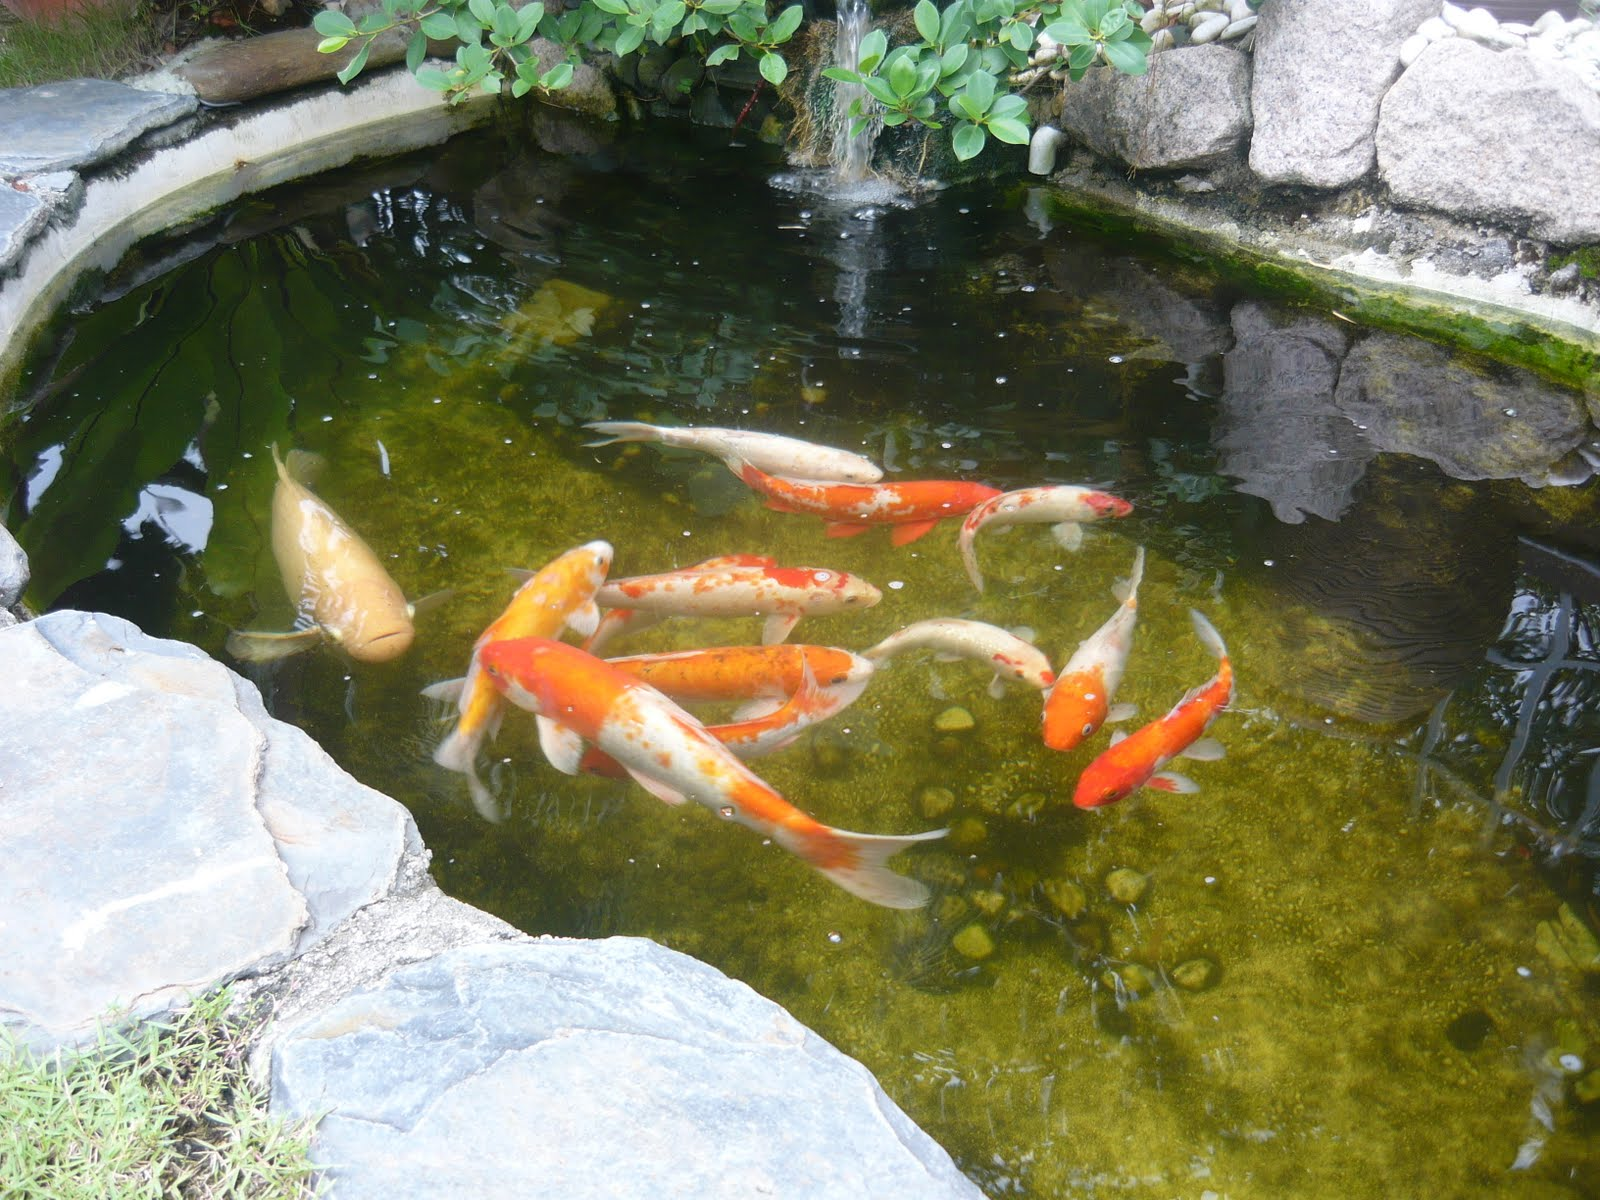 Of Colour Into A Garden Is By Keeping Koi Fish In A Garden Pond